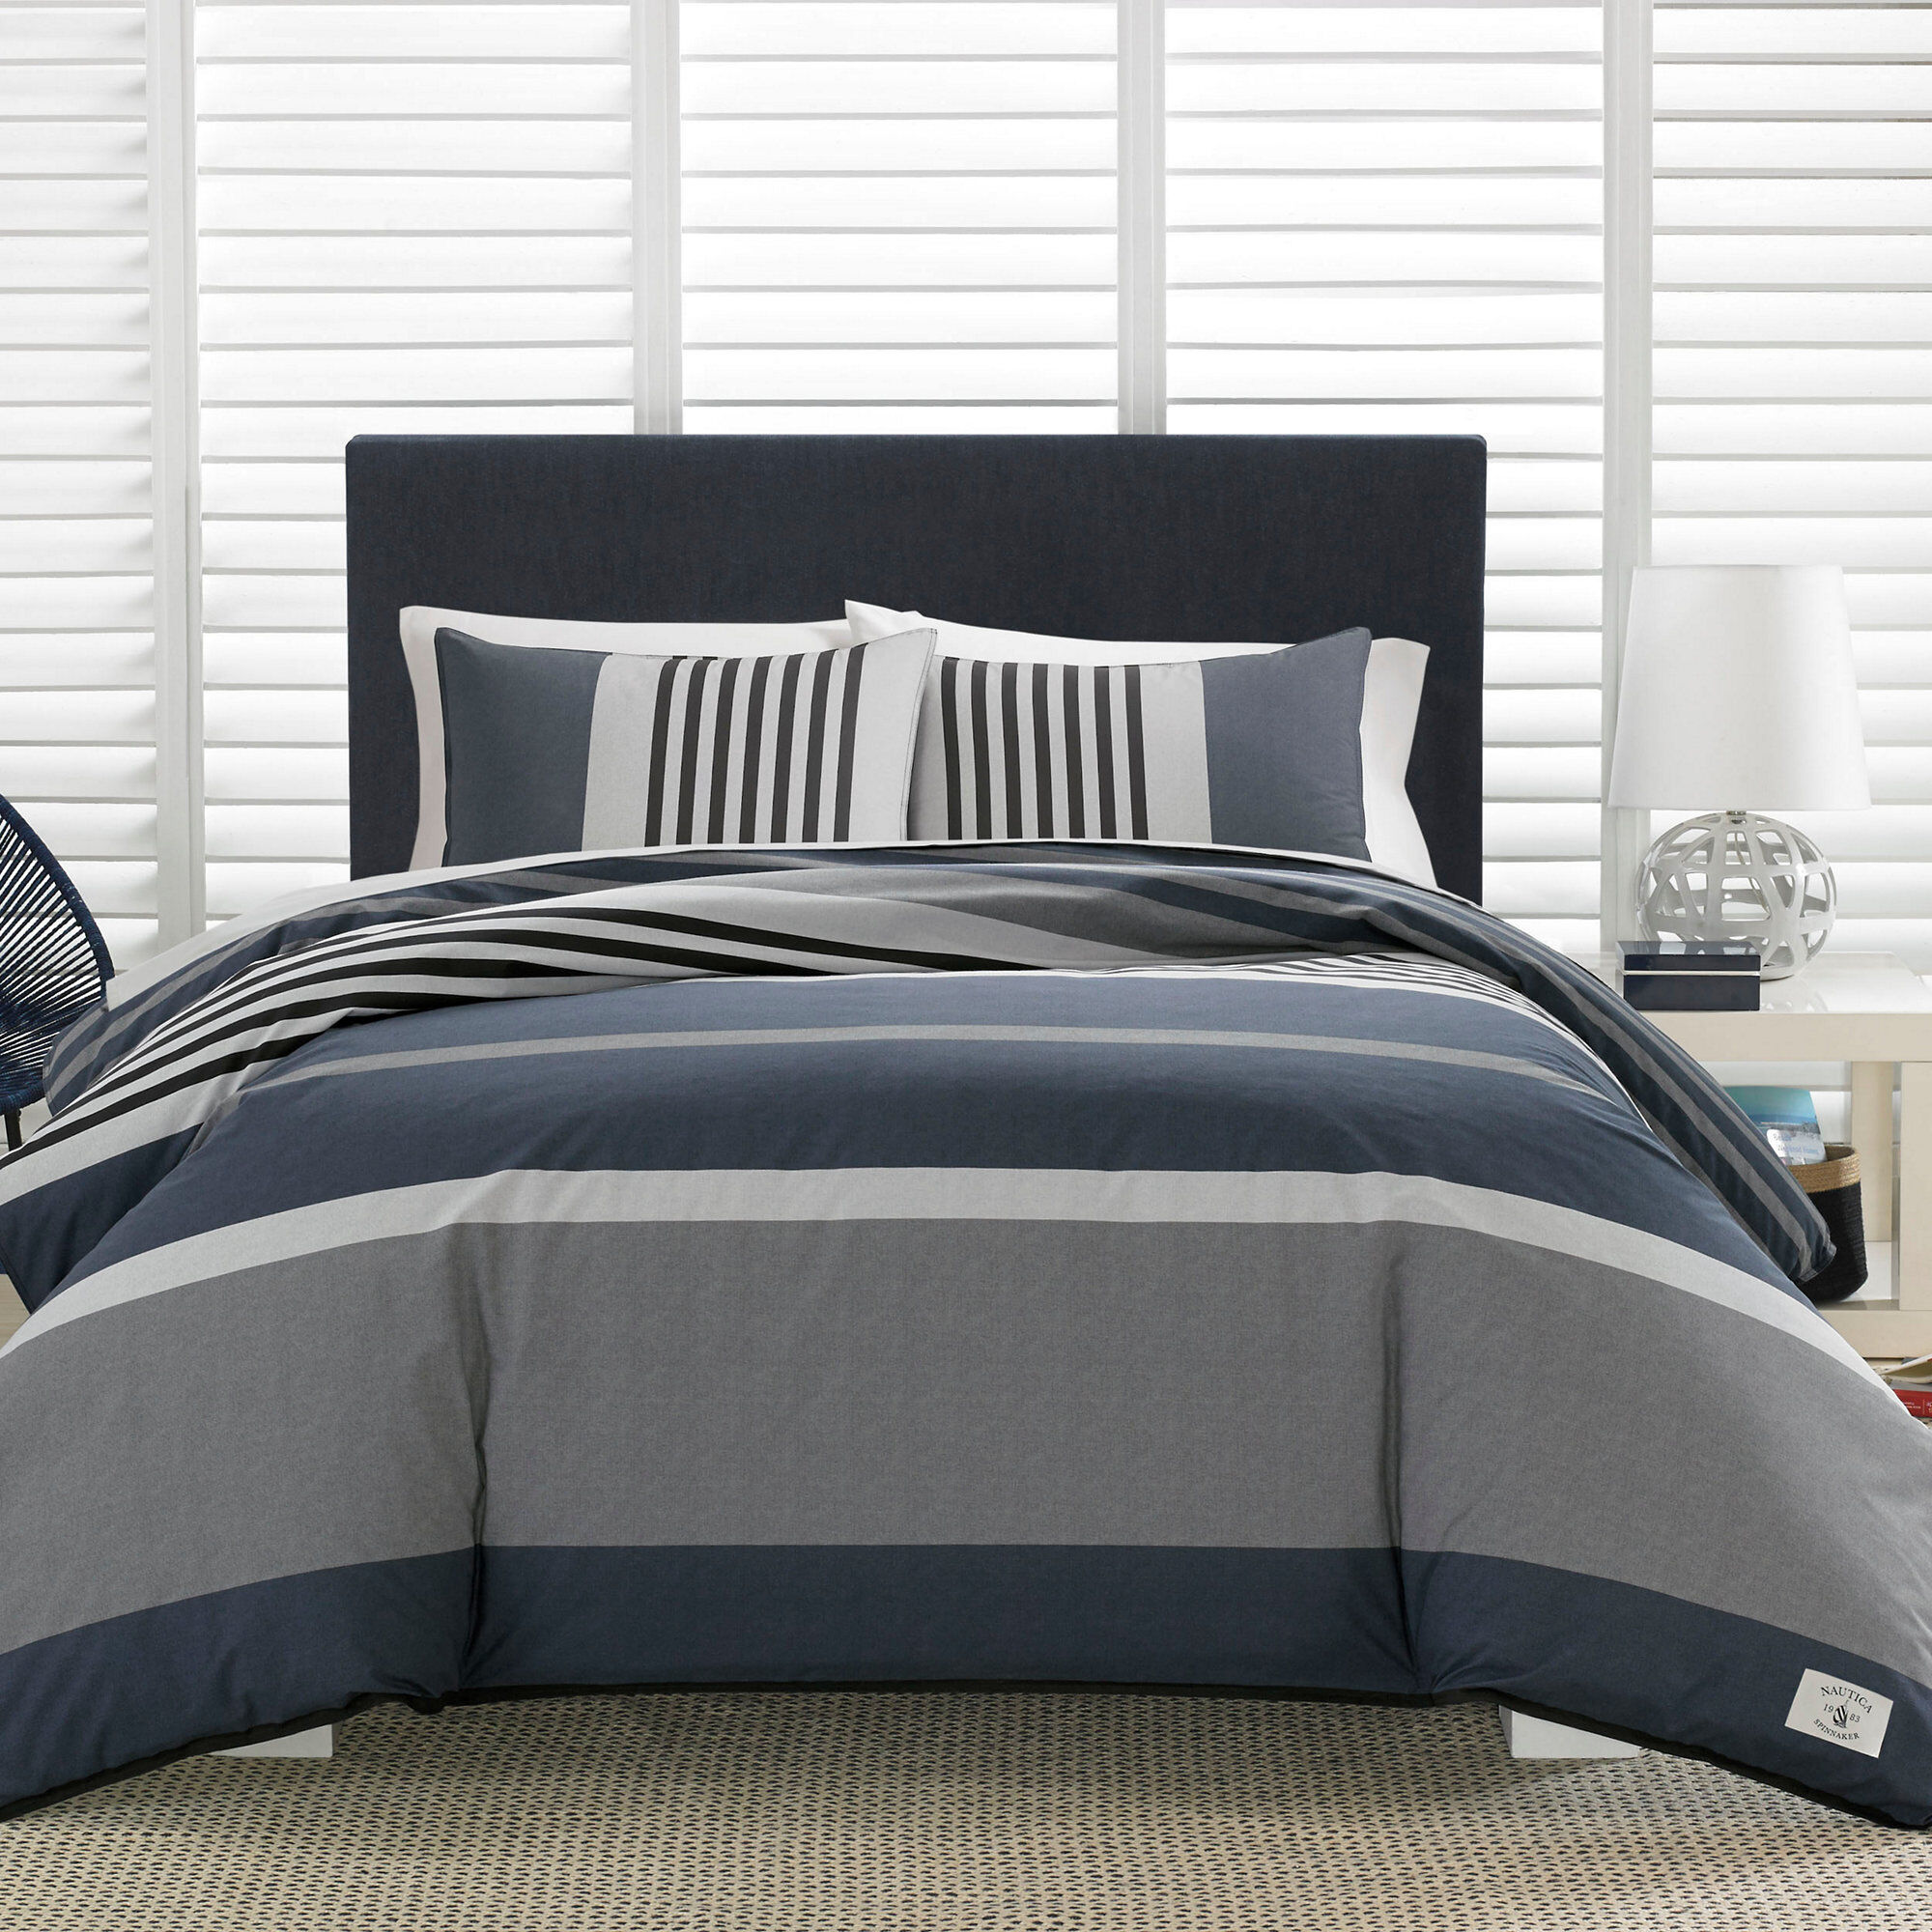 Duvet And Comforter Sets Rendon Charcoal Comforter Set